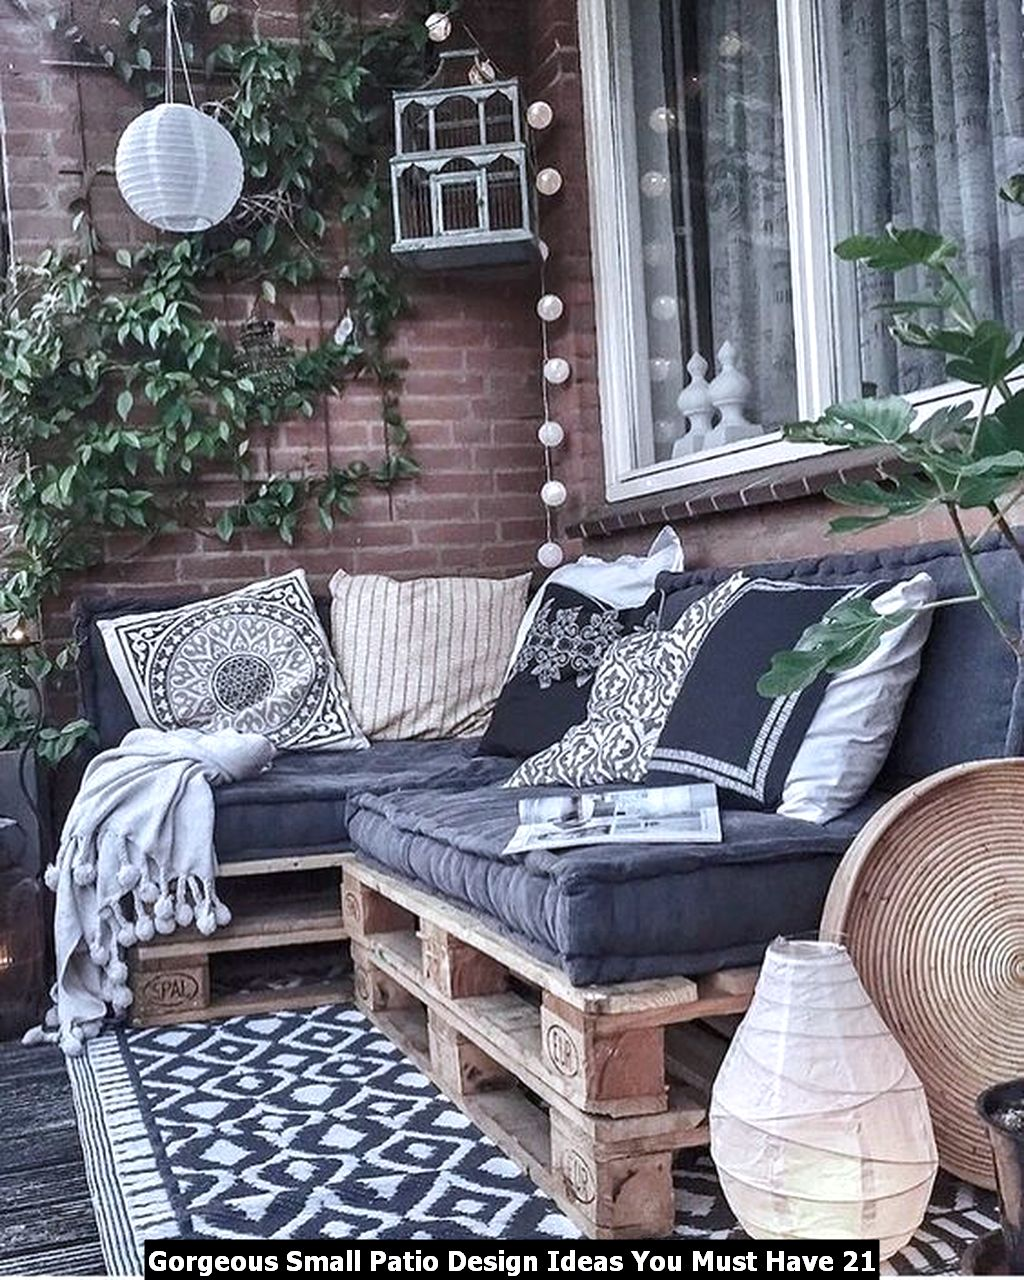 Gorgeous Small Patio Design Ideas You Must Have 21